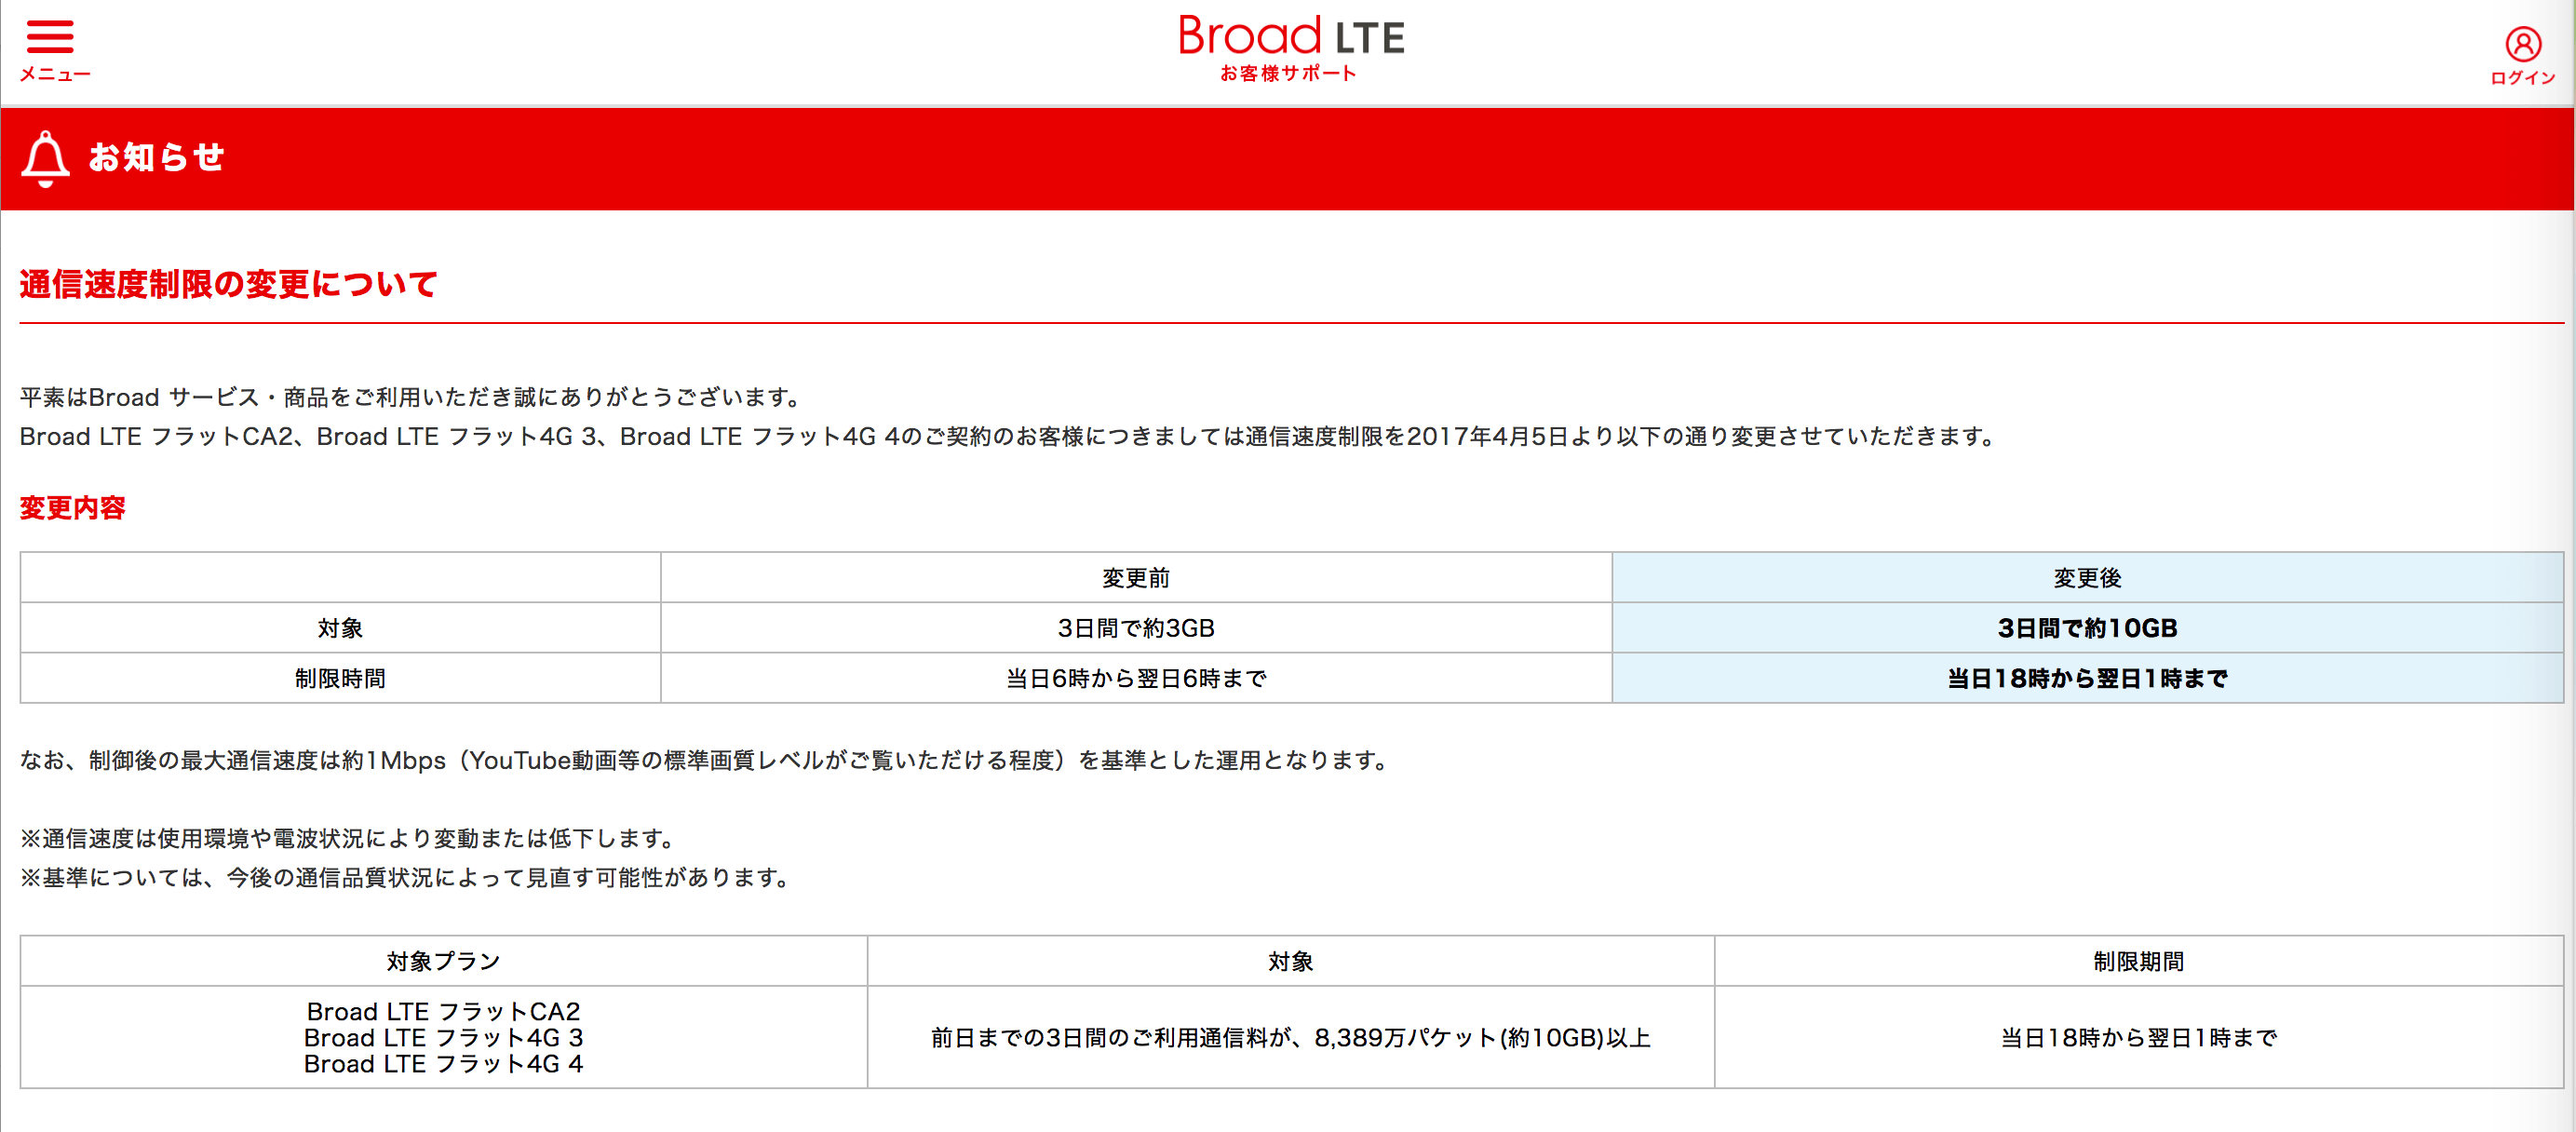 Broad EMOBILE LTEの速度制限